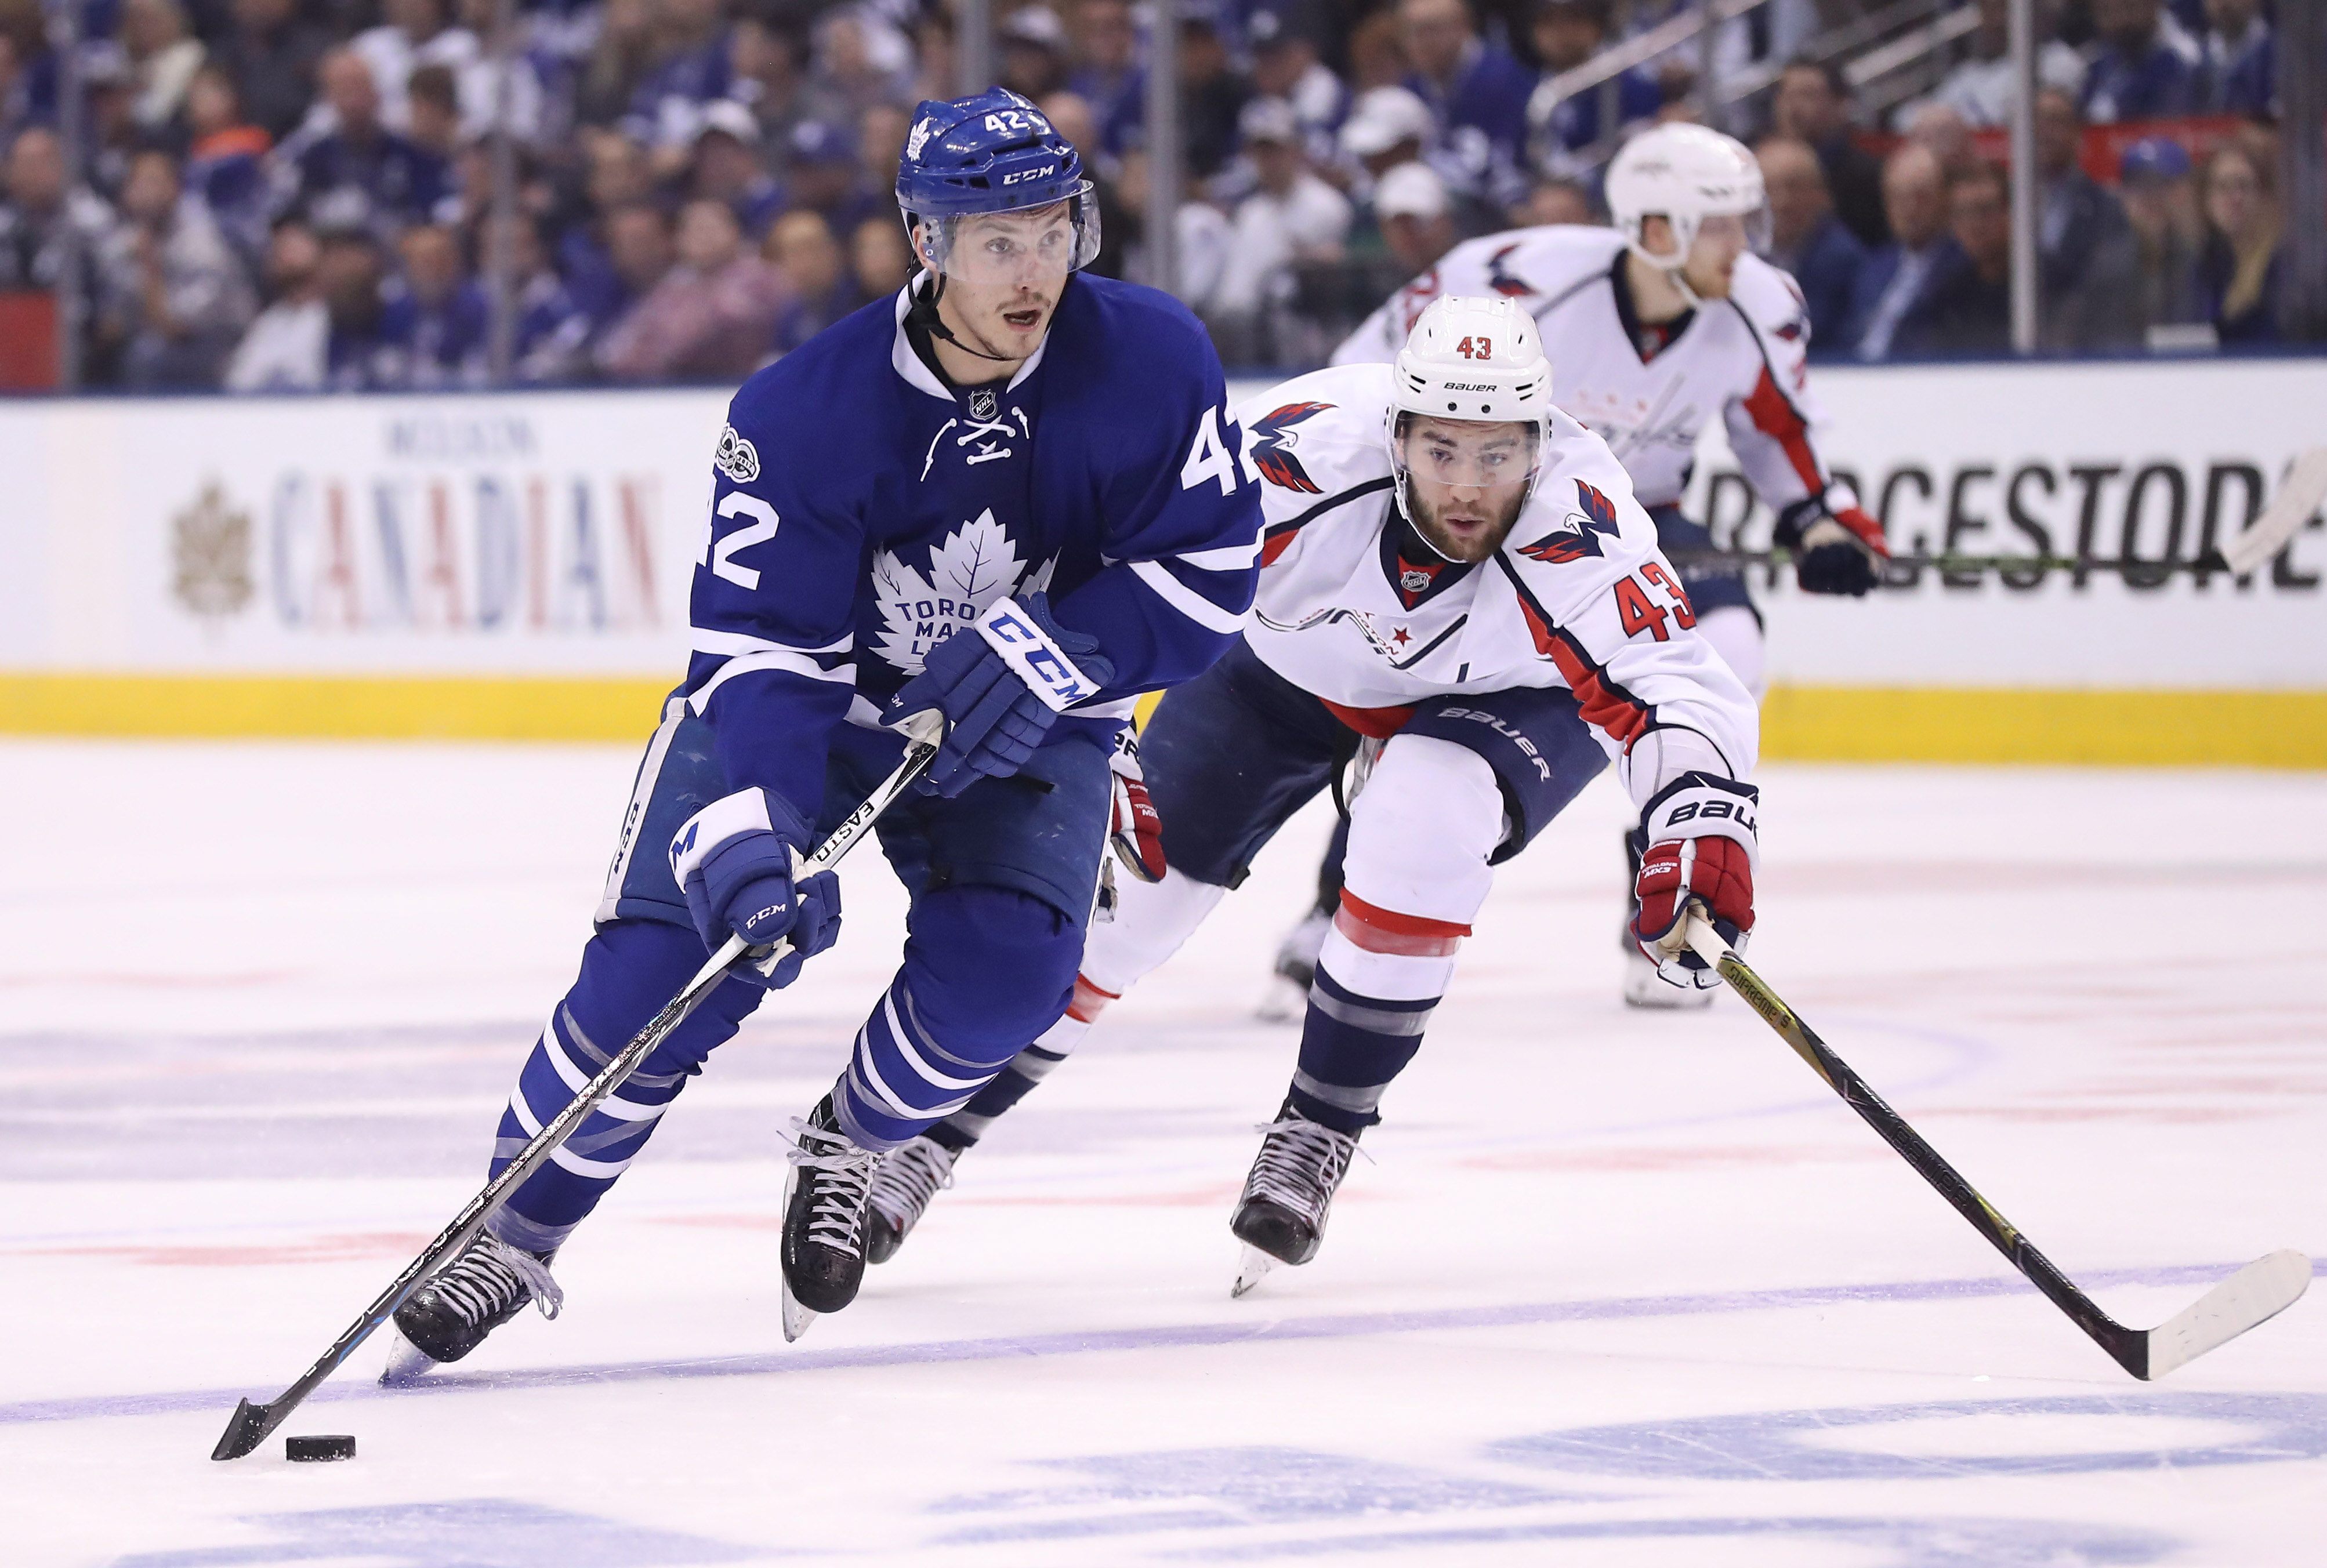 10028335-nhl-stanley-cup-playoffs-washington-capitals-at-toronto-maple-leafs